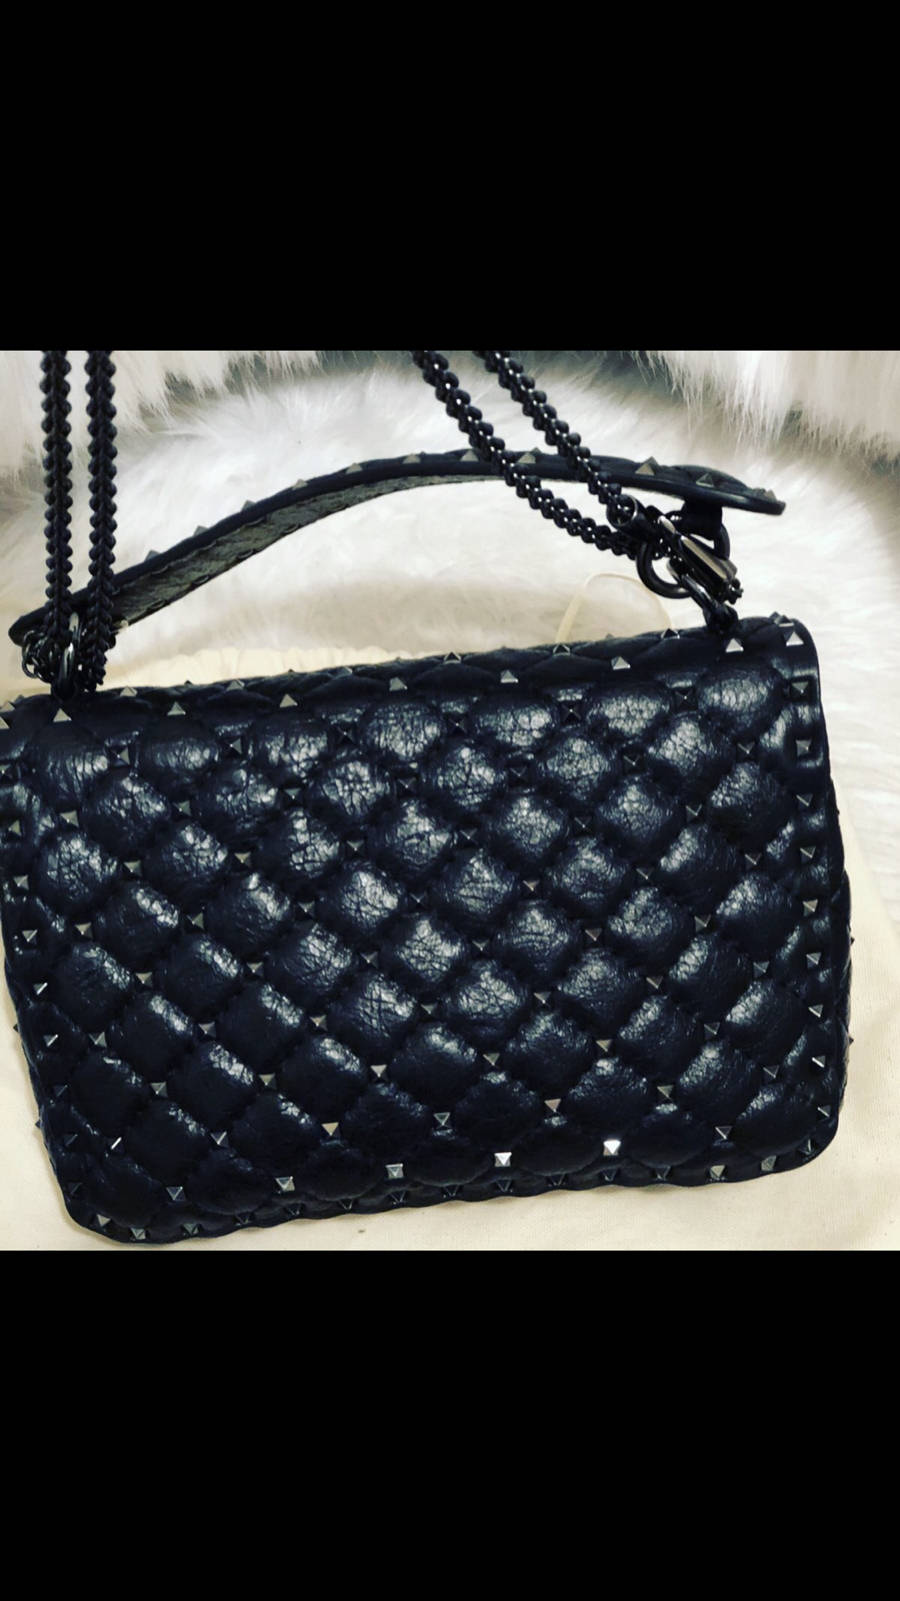 Valentino-Rockstud-Quilted-Spike-Crossbody-With-Handle_15695D.jpg